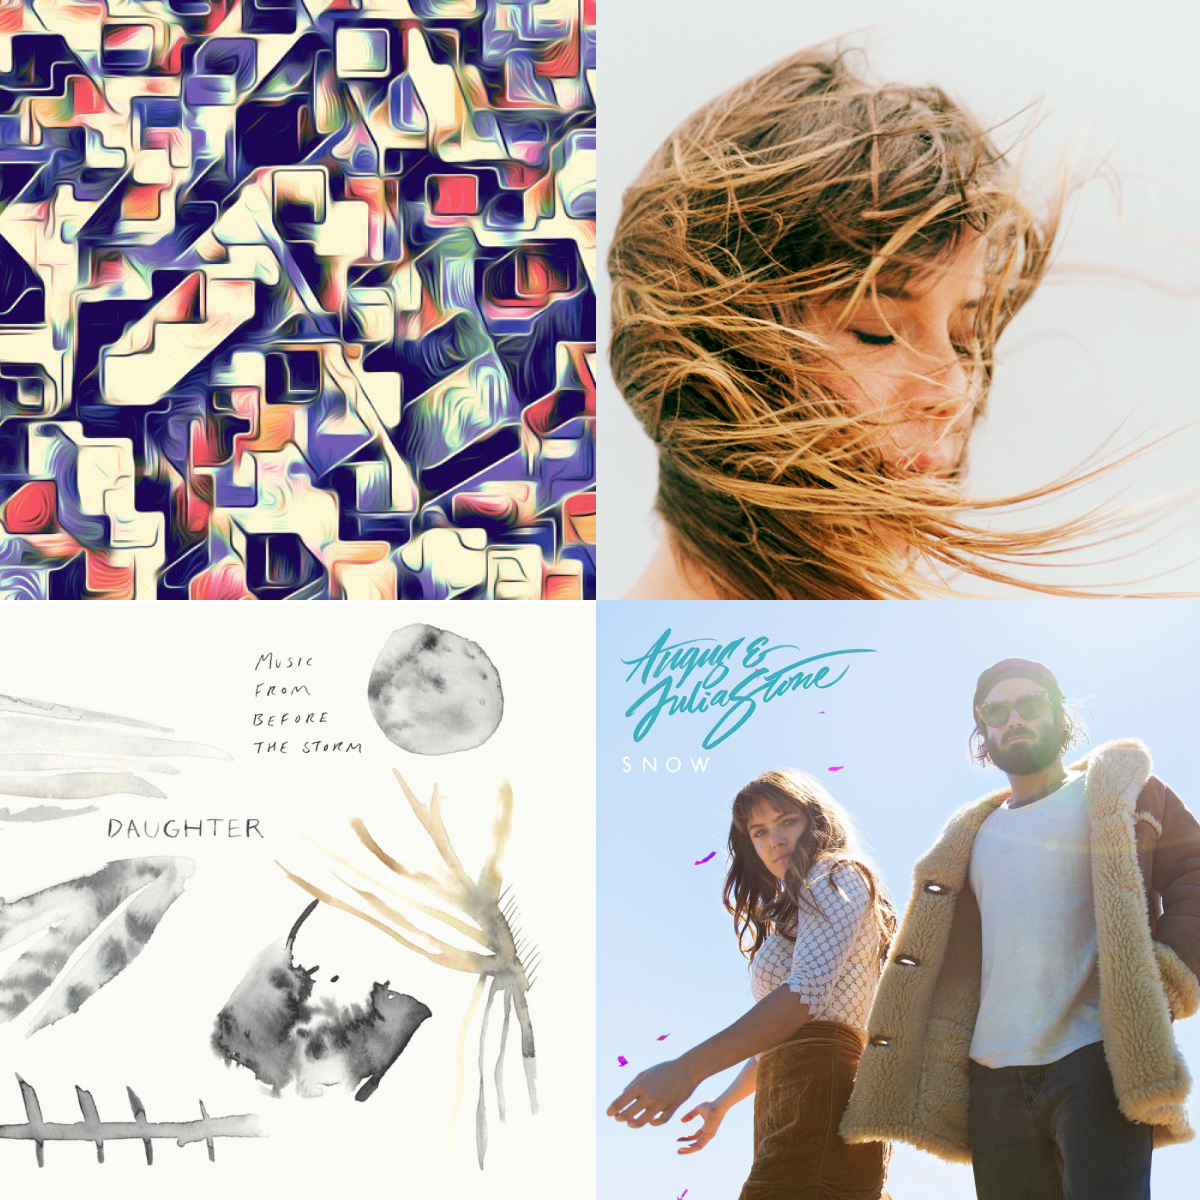 Artists's from top left to bottom right: Tora, Cat Power, Daughter, Angus & Julia Stone